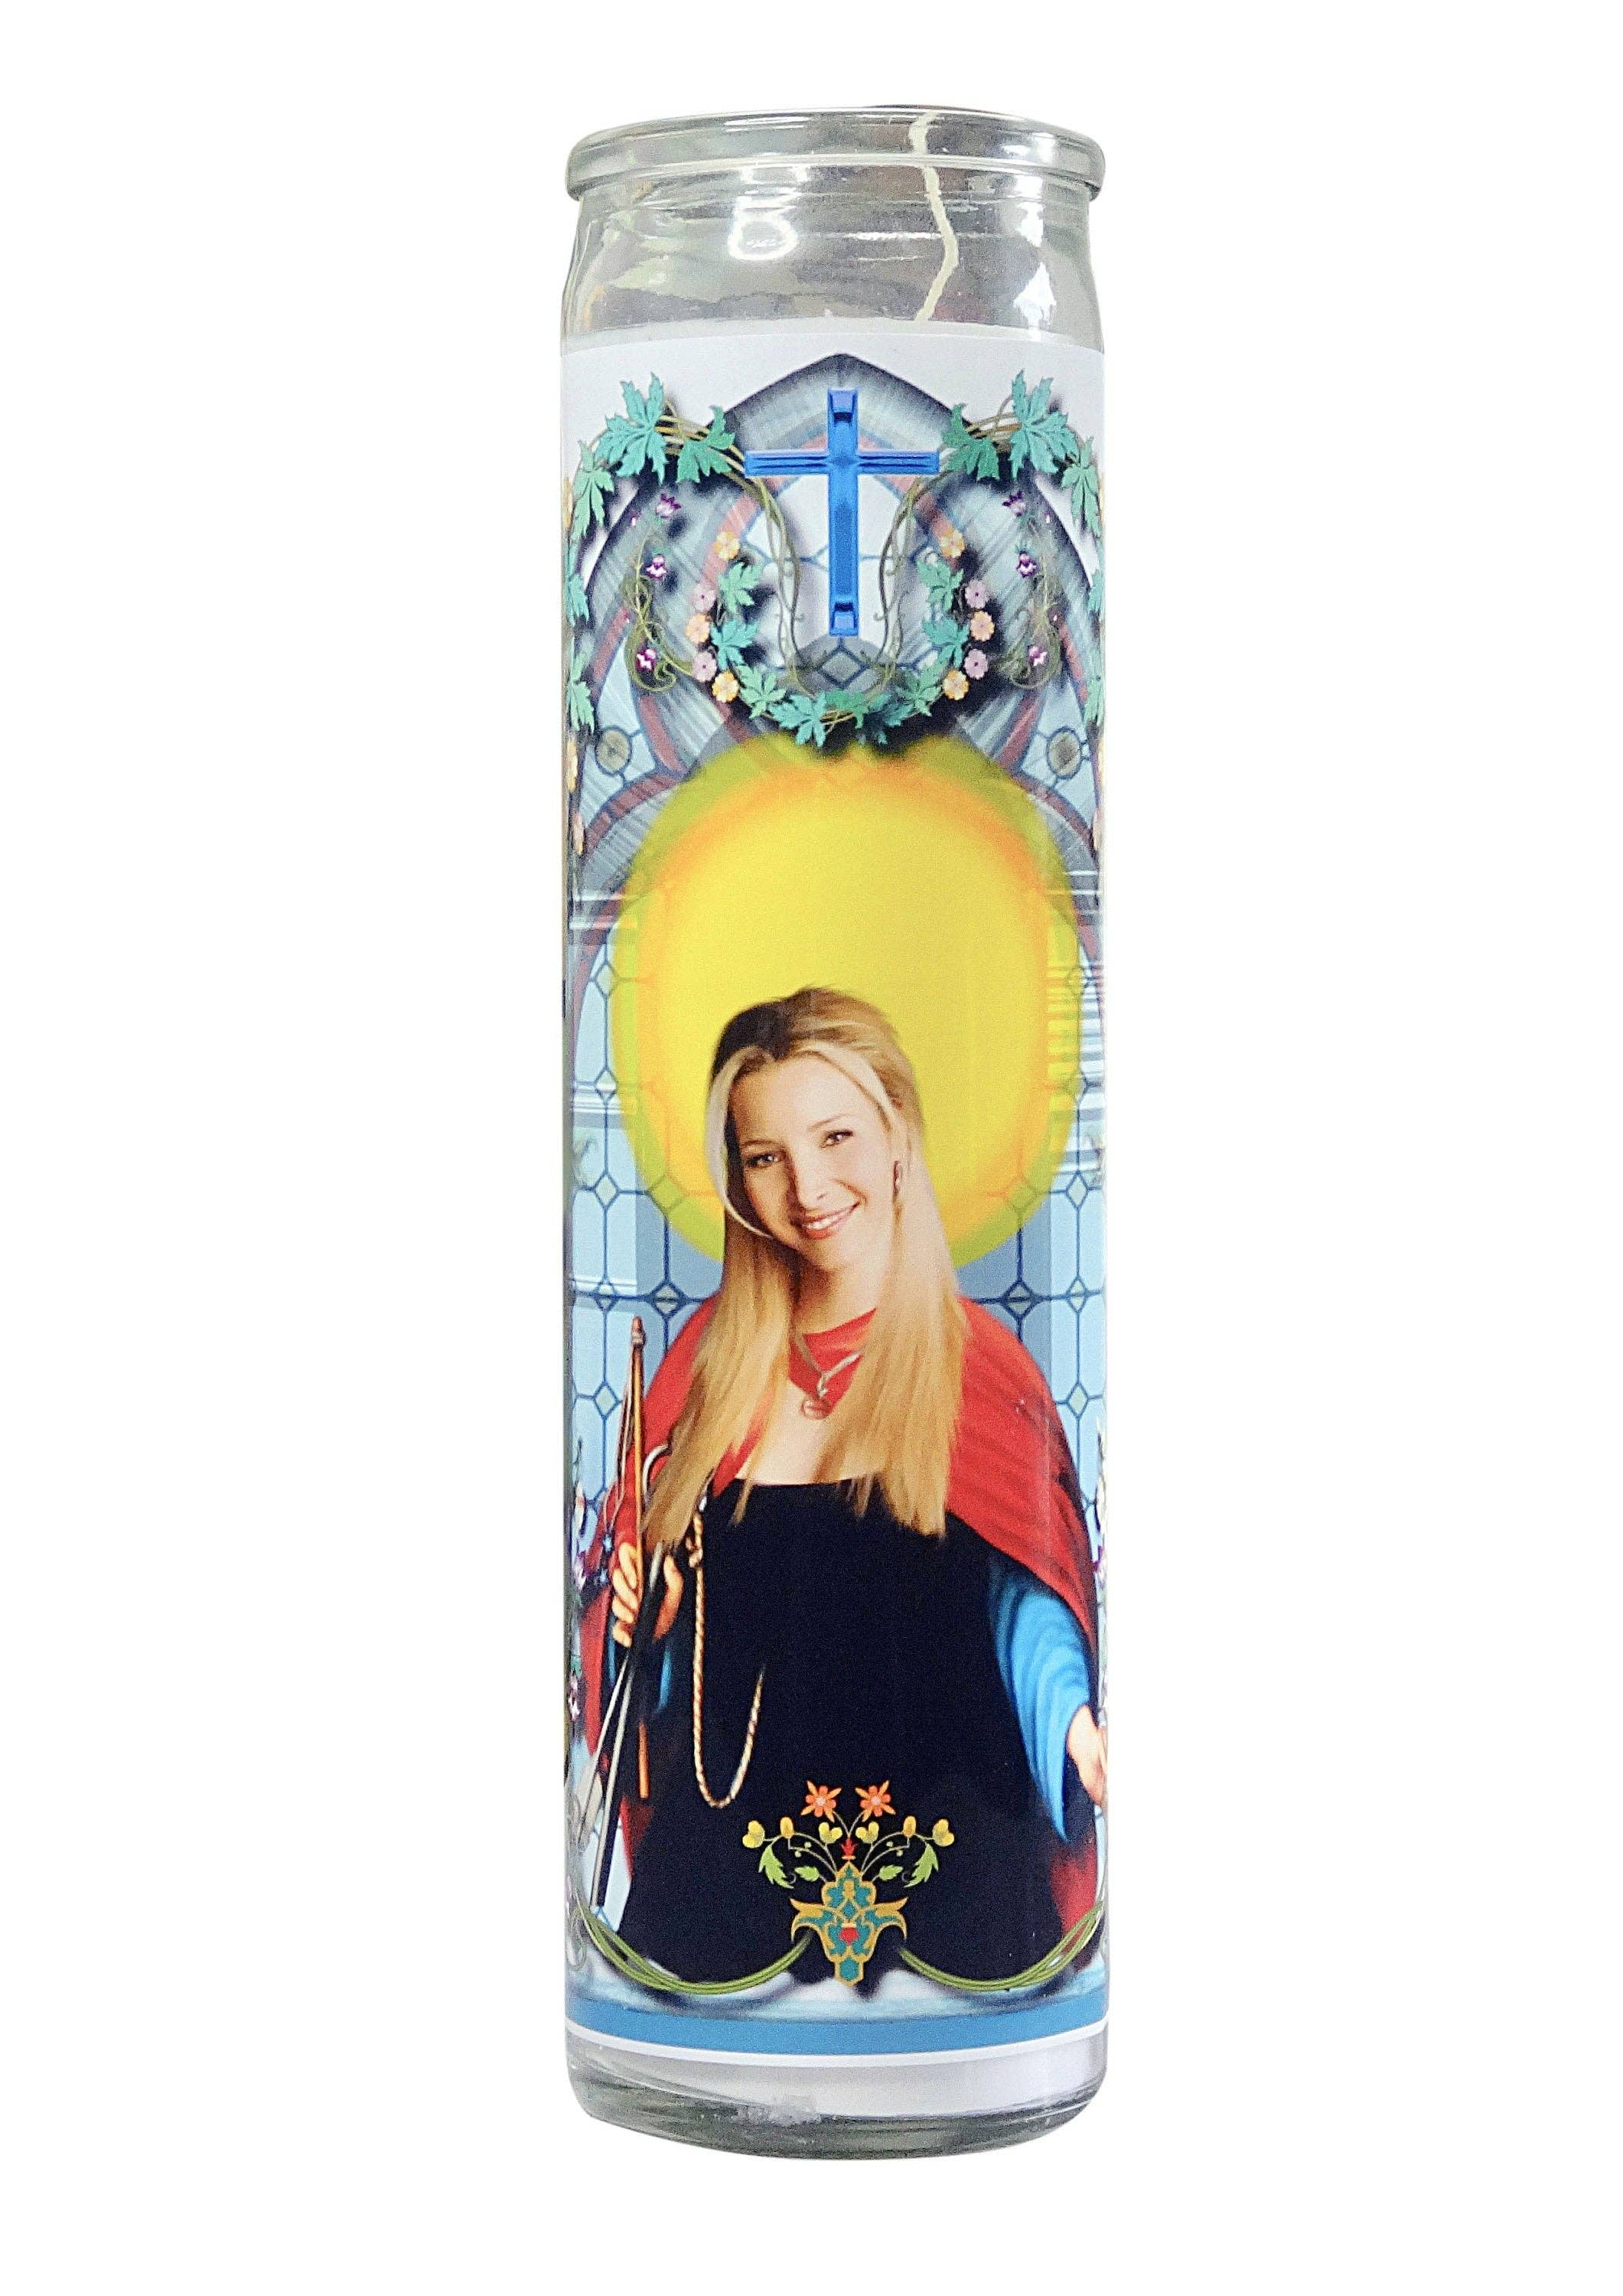 Phoebe Buffay Celebrity Prayer Candle